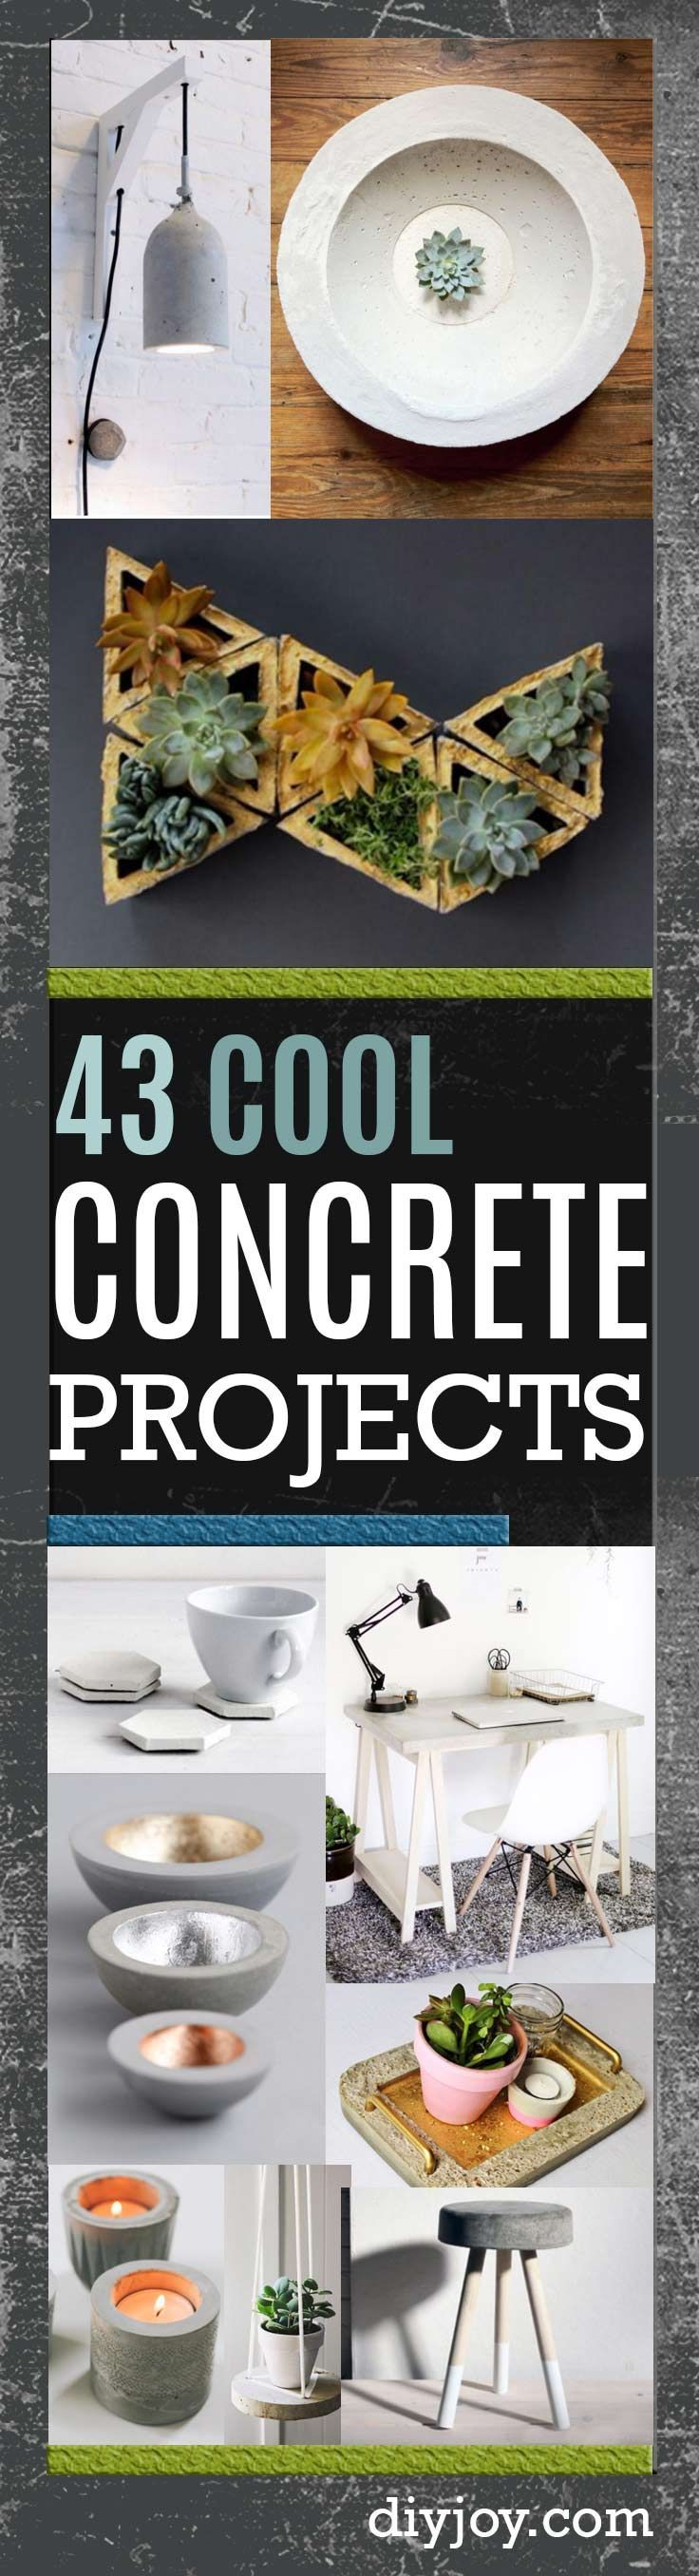 324 best images about cool diy ideas on pinterest crafts for Cool concrete ideas